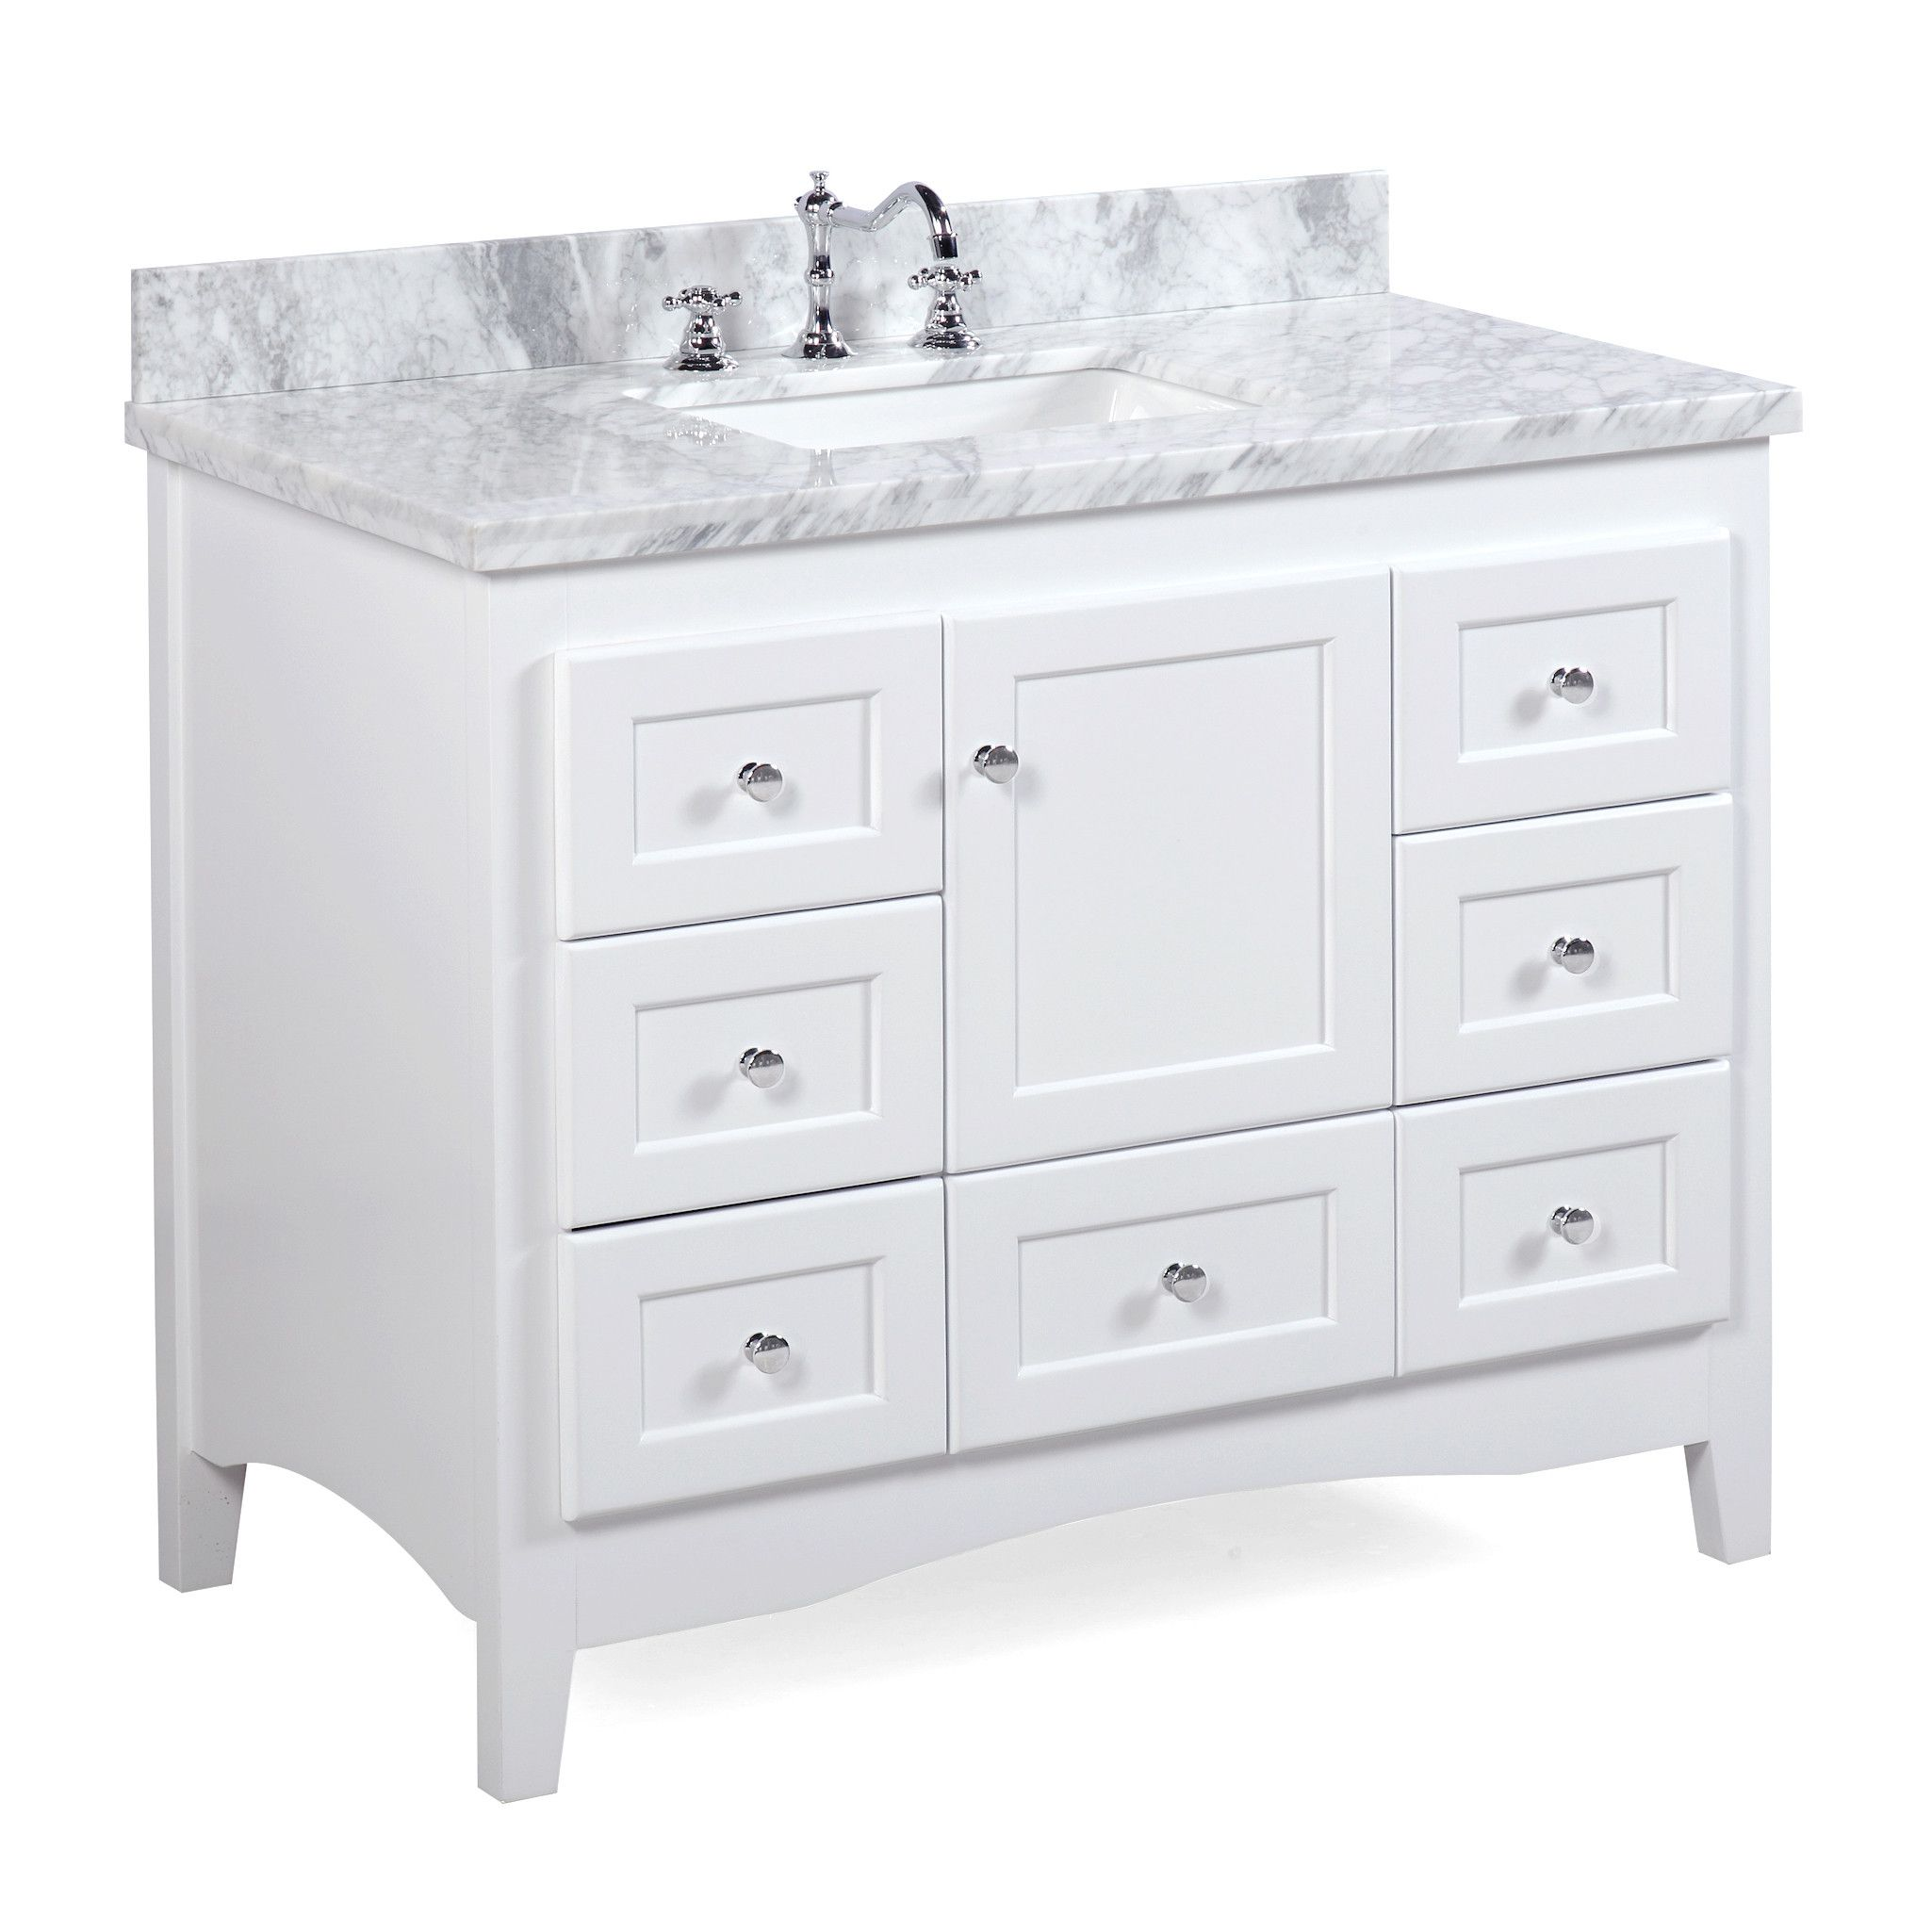 design paris espresso inch vanities sink elements in vanity set corbel products single bathroom universe